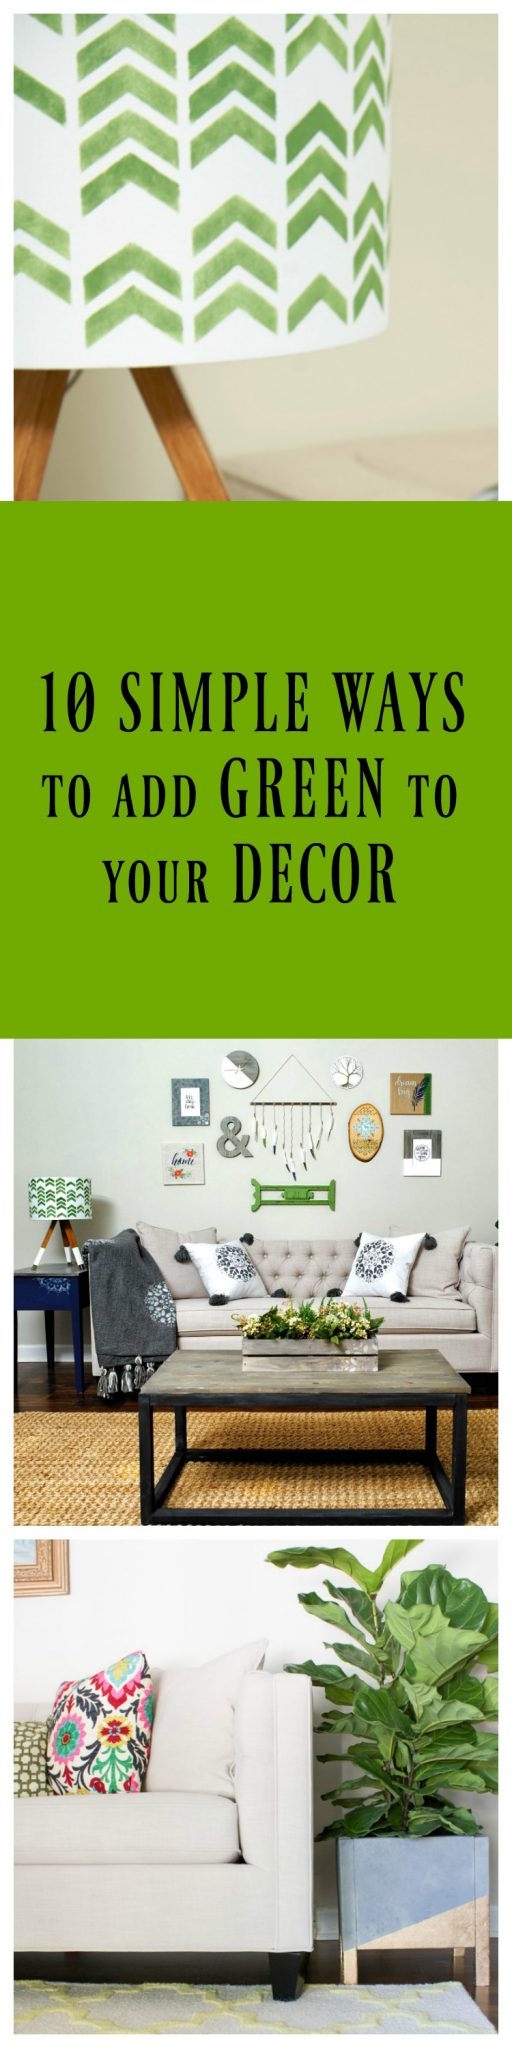 10 Simple Ways to Add Green to Your Decor